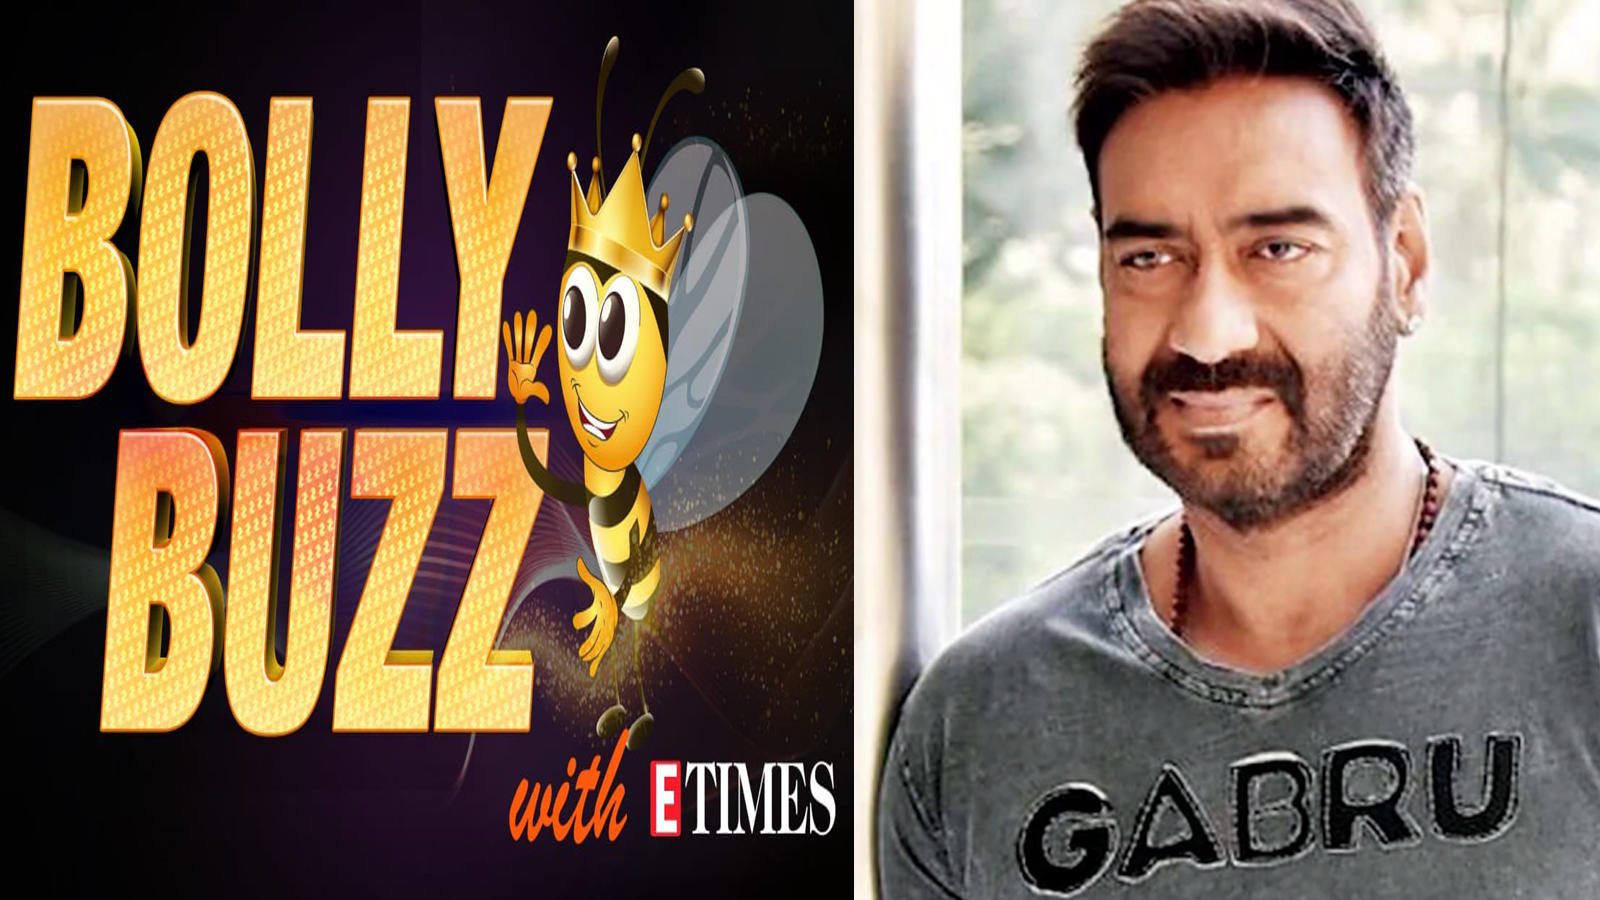 bolly-buzz-ajay-devgn-turns-51-salman-khan-to-make-sequel-of-ek-tha-tiger